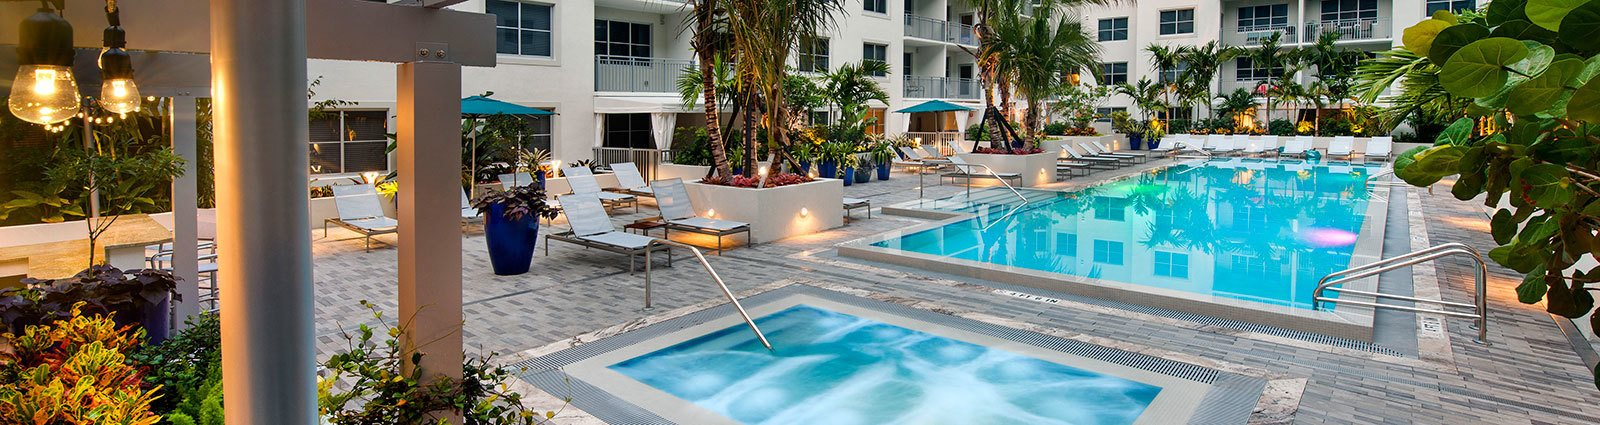 Berkshire Lauderdale By The Sea apartment features